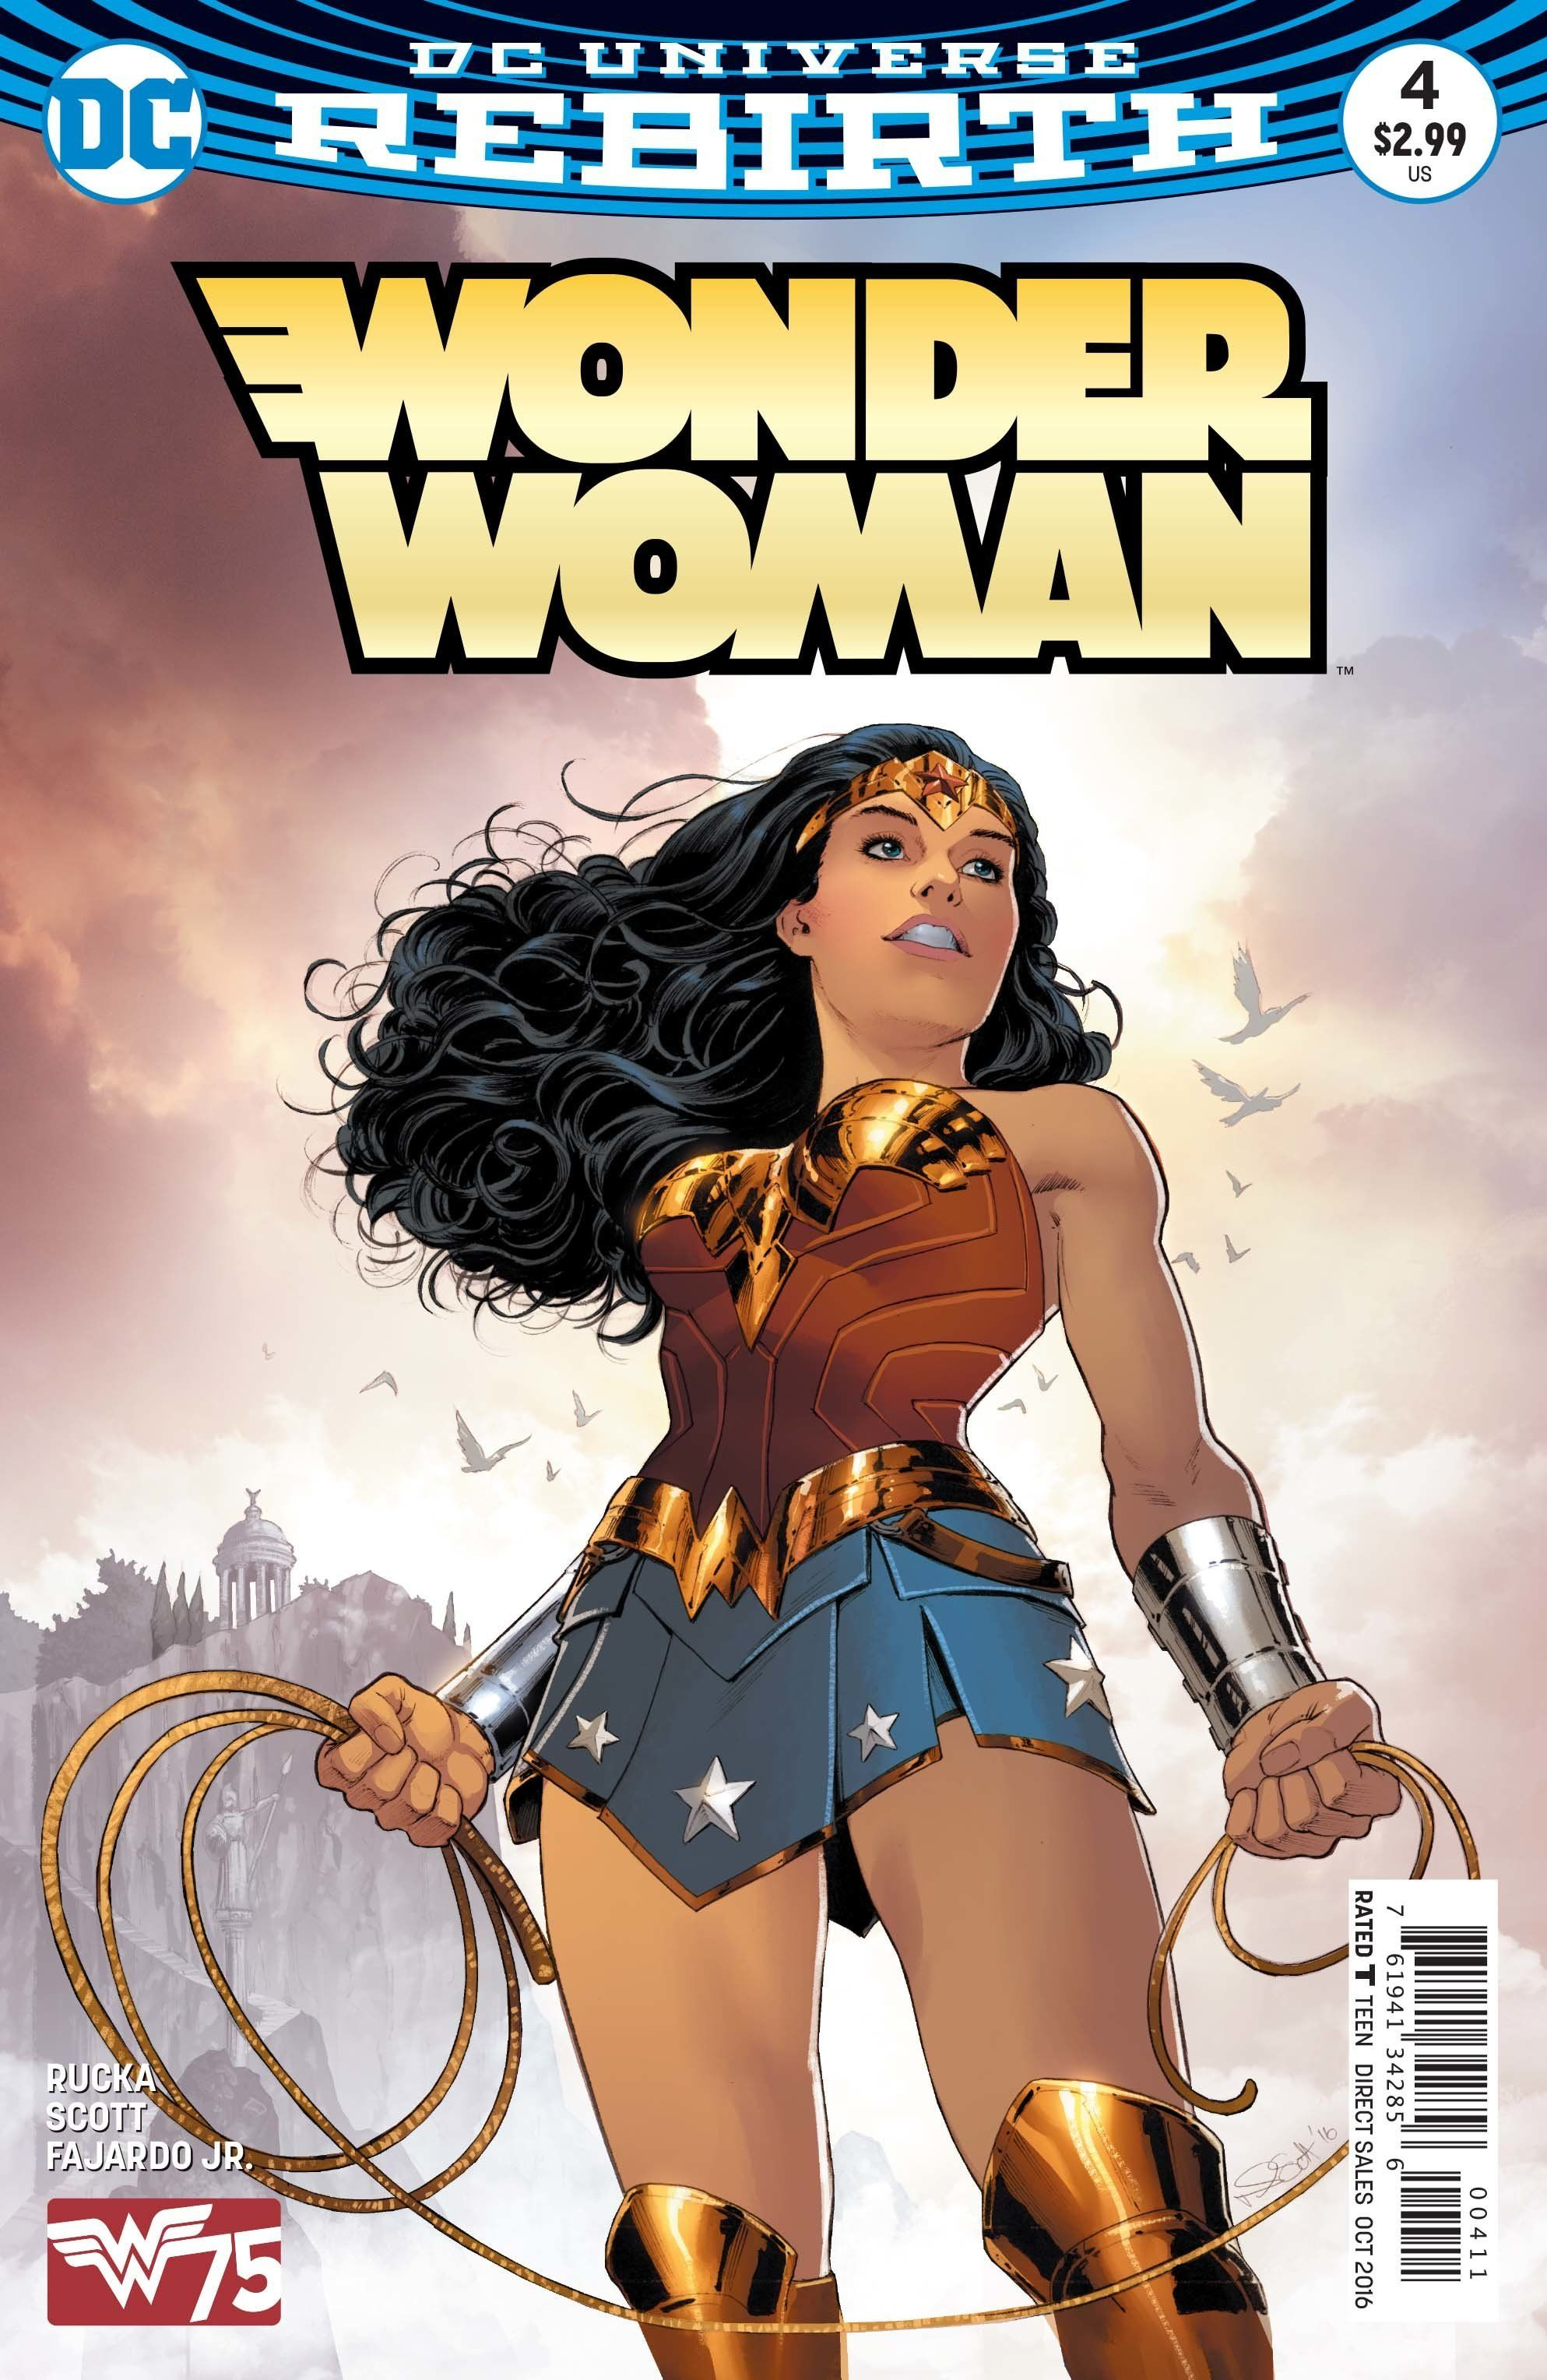 Writer Greg Rucka said that it was only